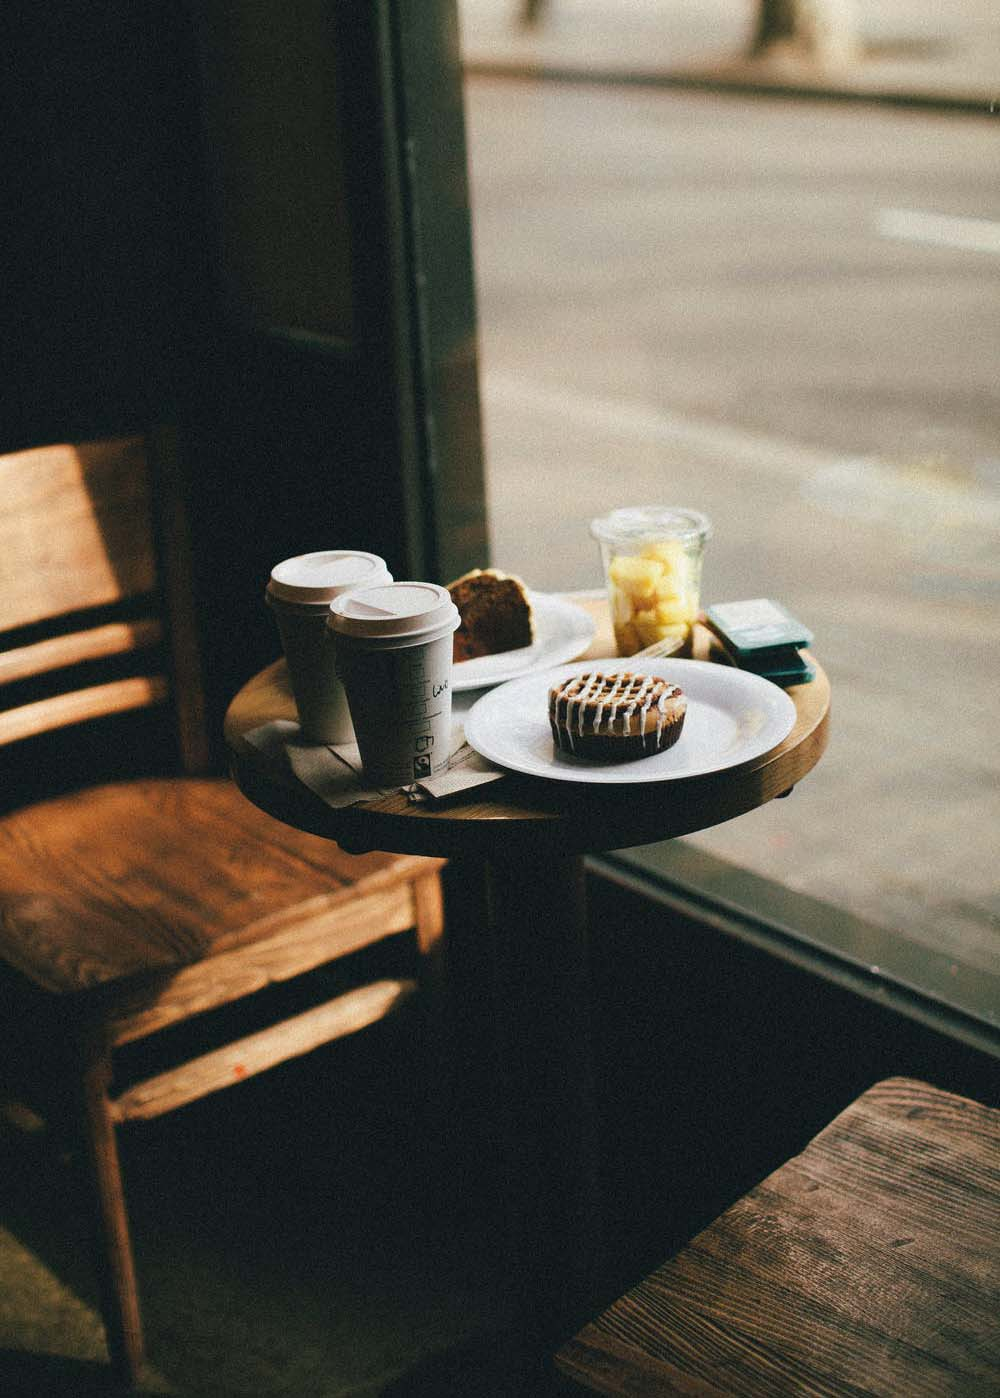 Stock photo of a coffee shop